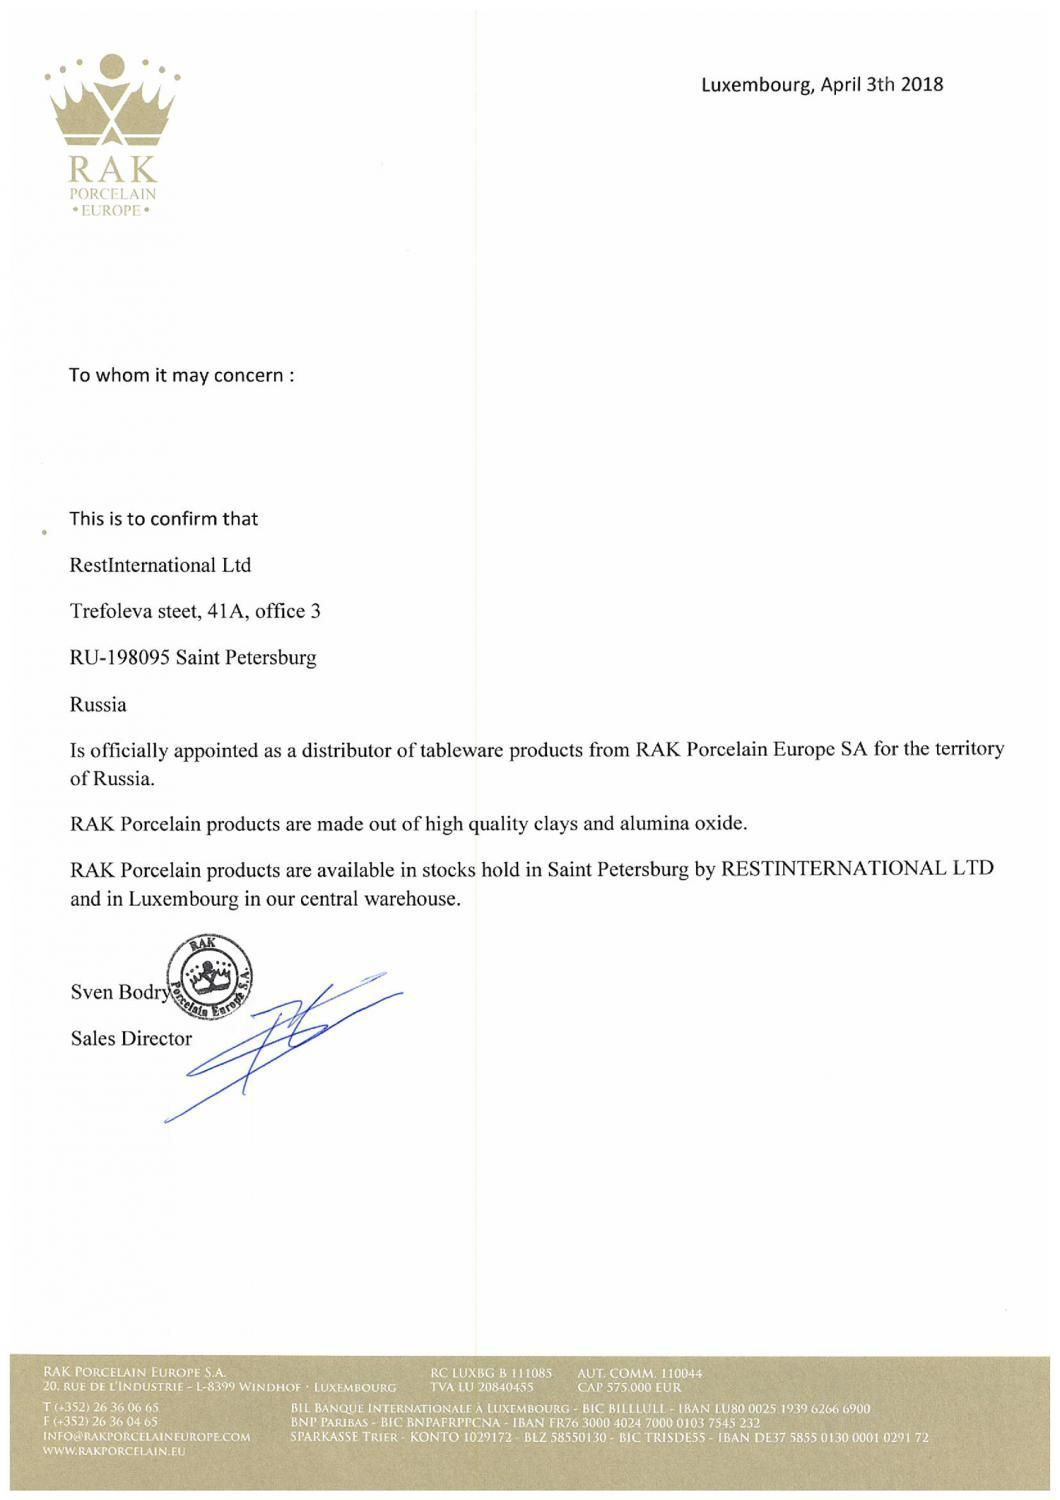 CERTIFICAT OF APPOINTED DISTRIBUTOR IN RUSSIA